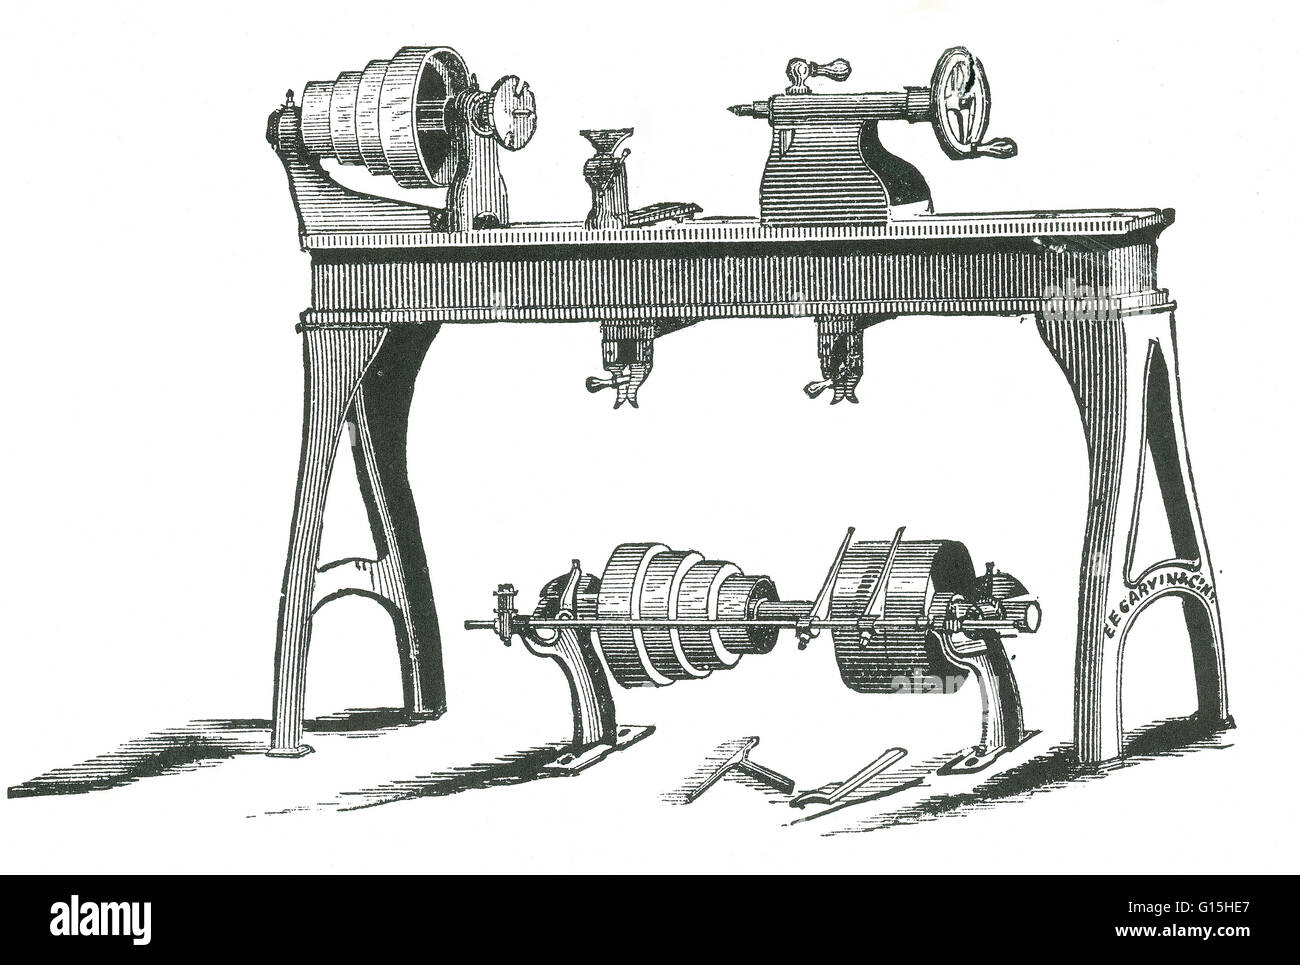 An early model of a hand lathe. A hand lathe is a machine tool that rotates the workpiece on its axis to perform - Stock Image